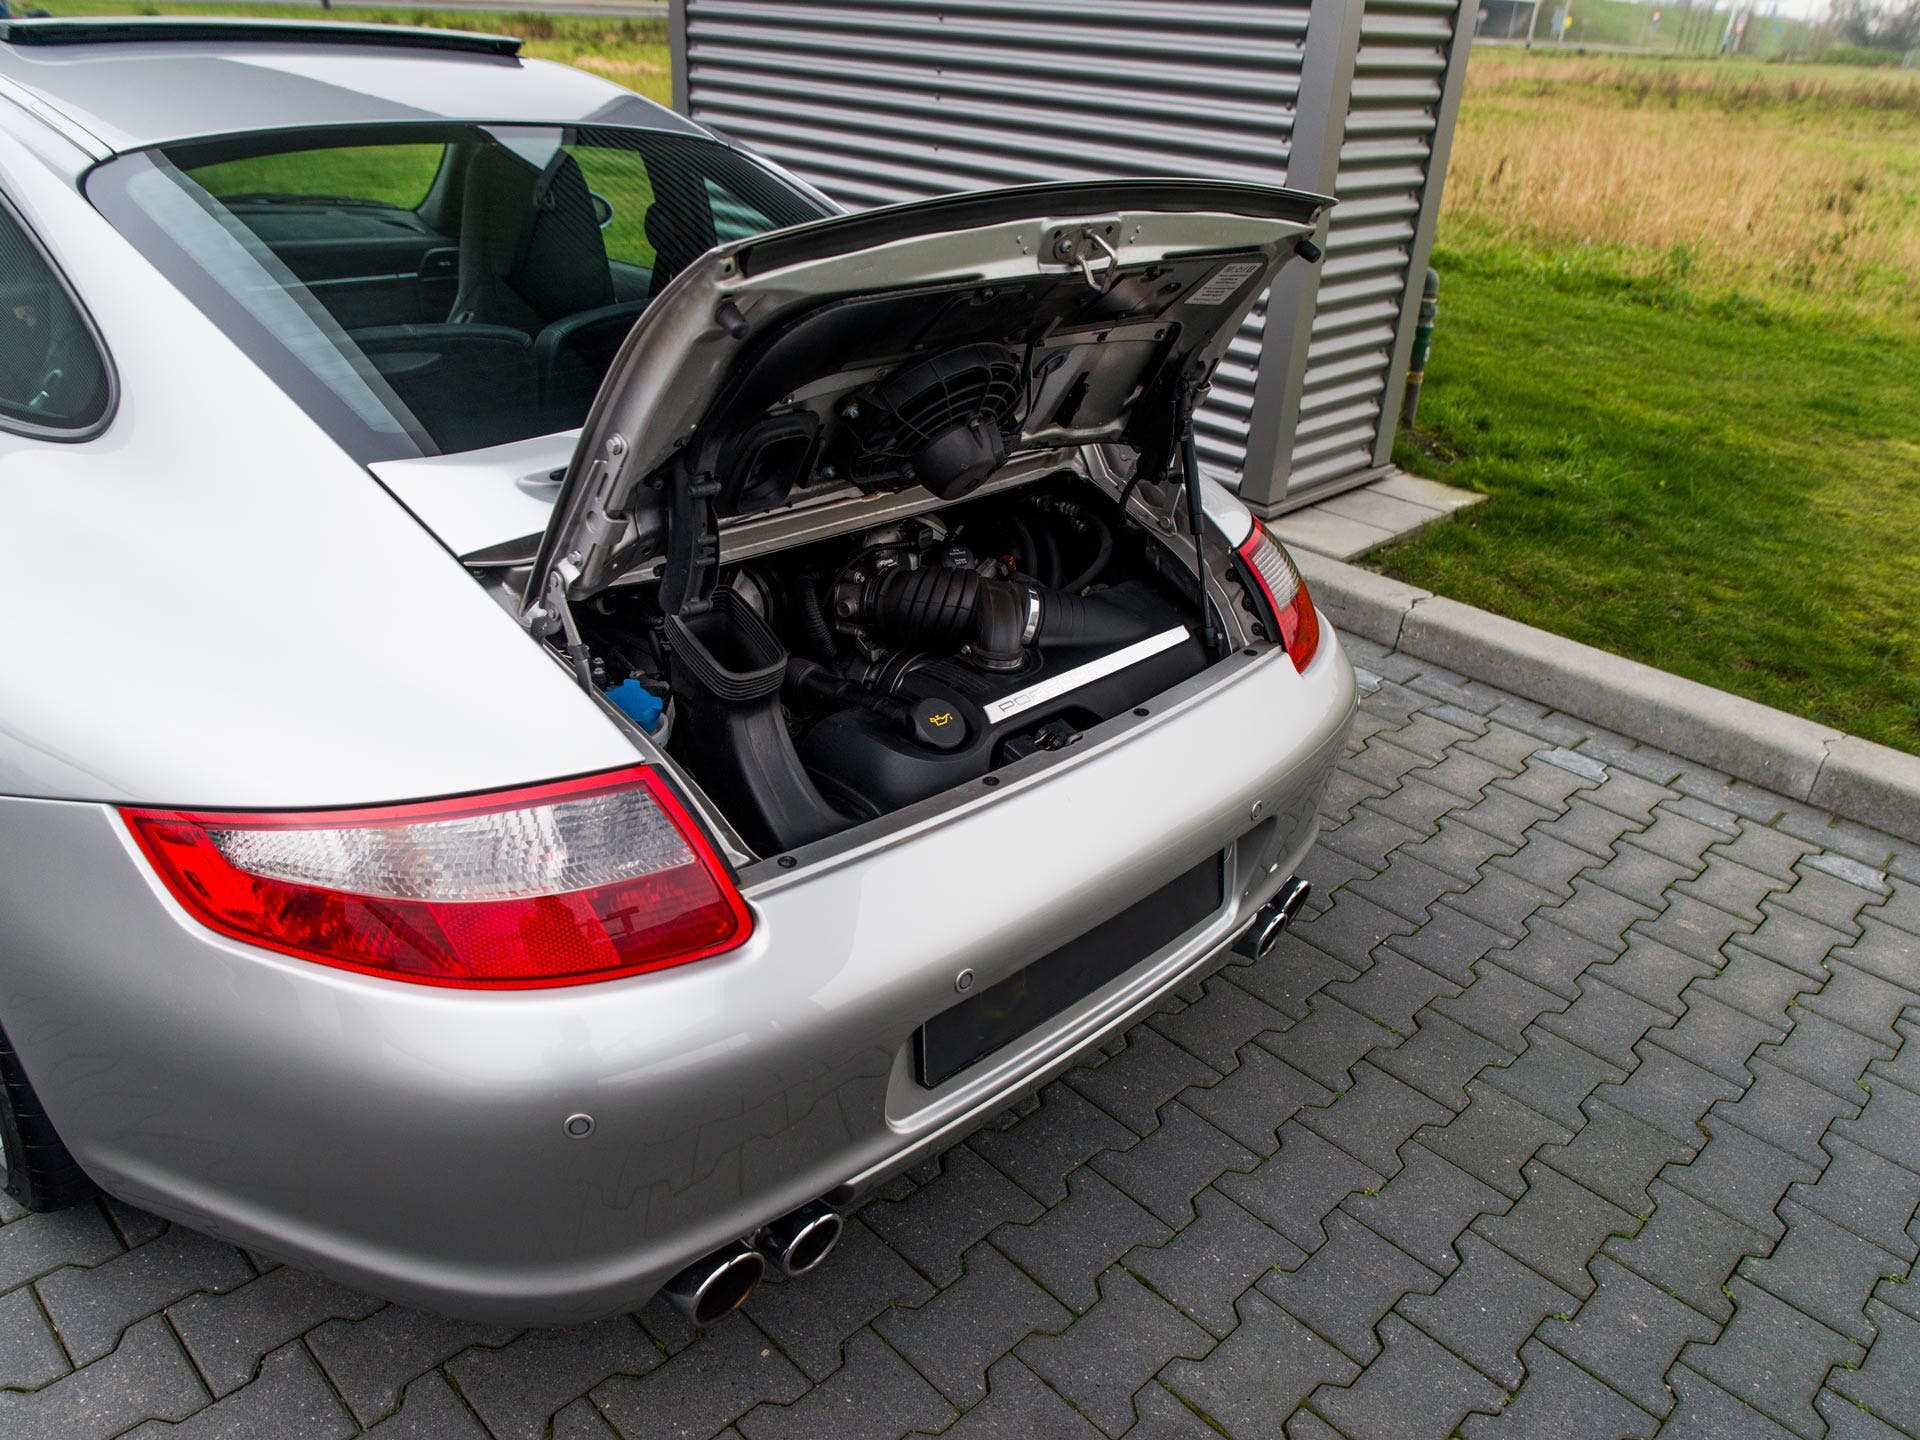 Tweedehands Porsche 911 Carrera 4S occasion